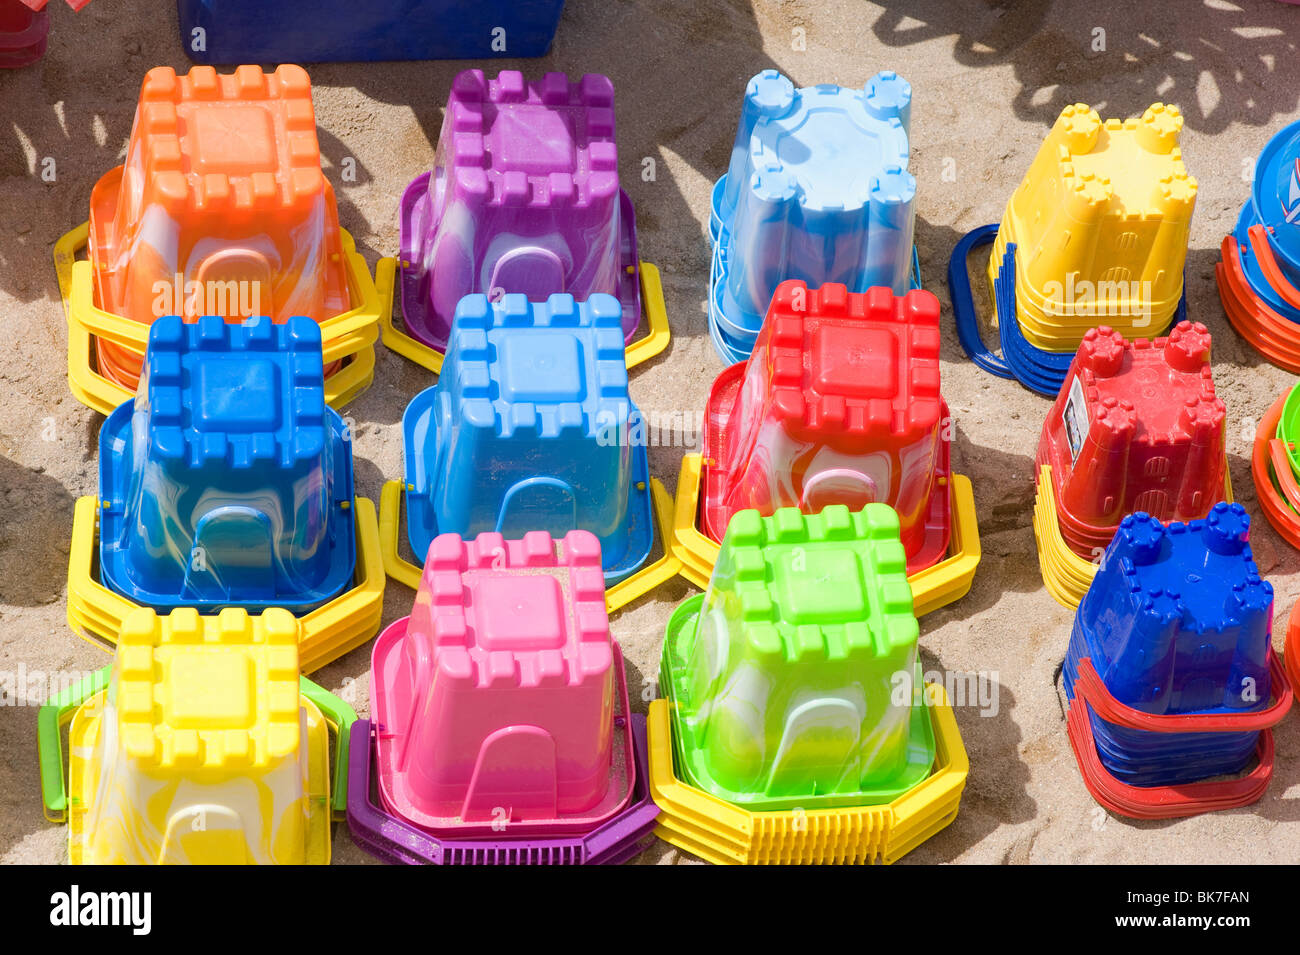 Beach buckets in newquay - Stock Image